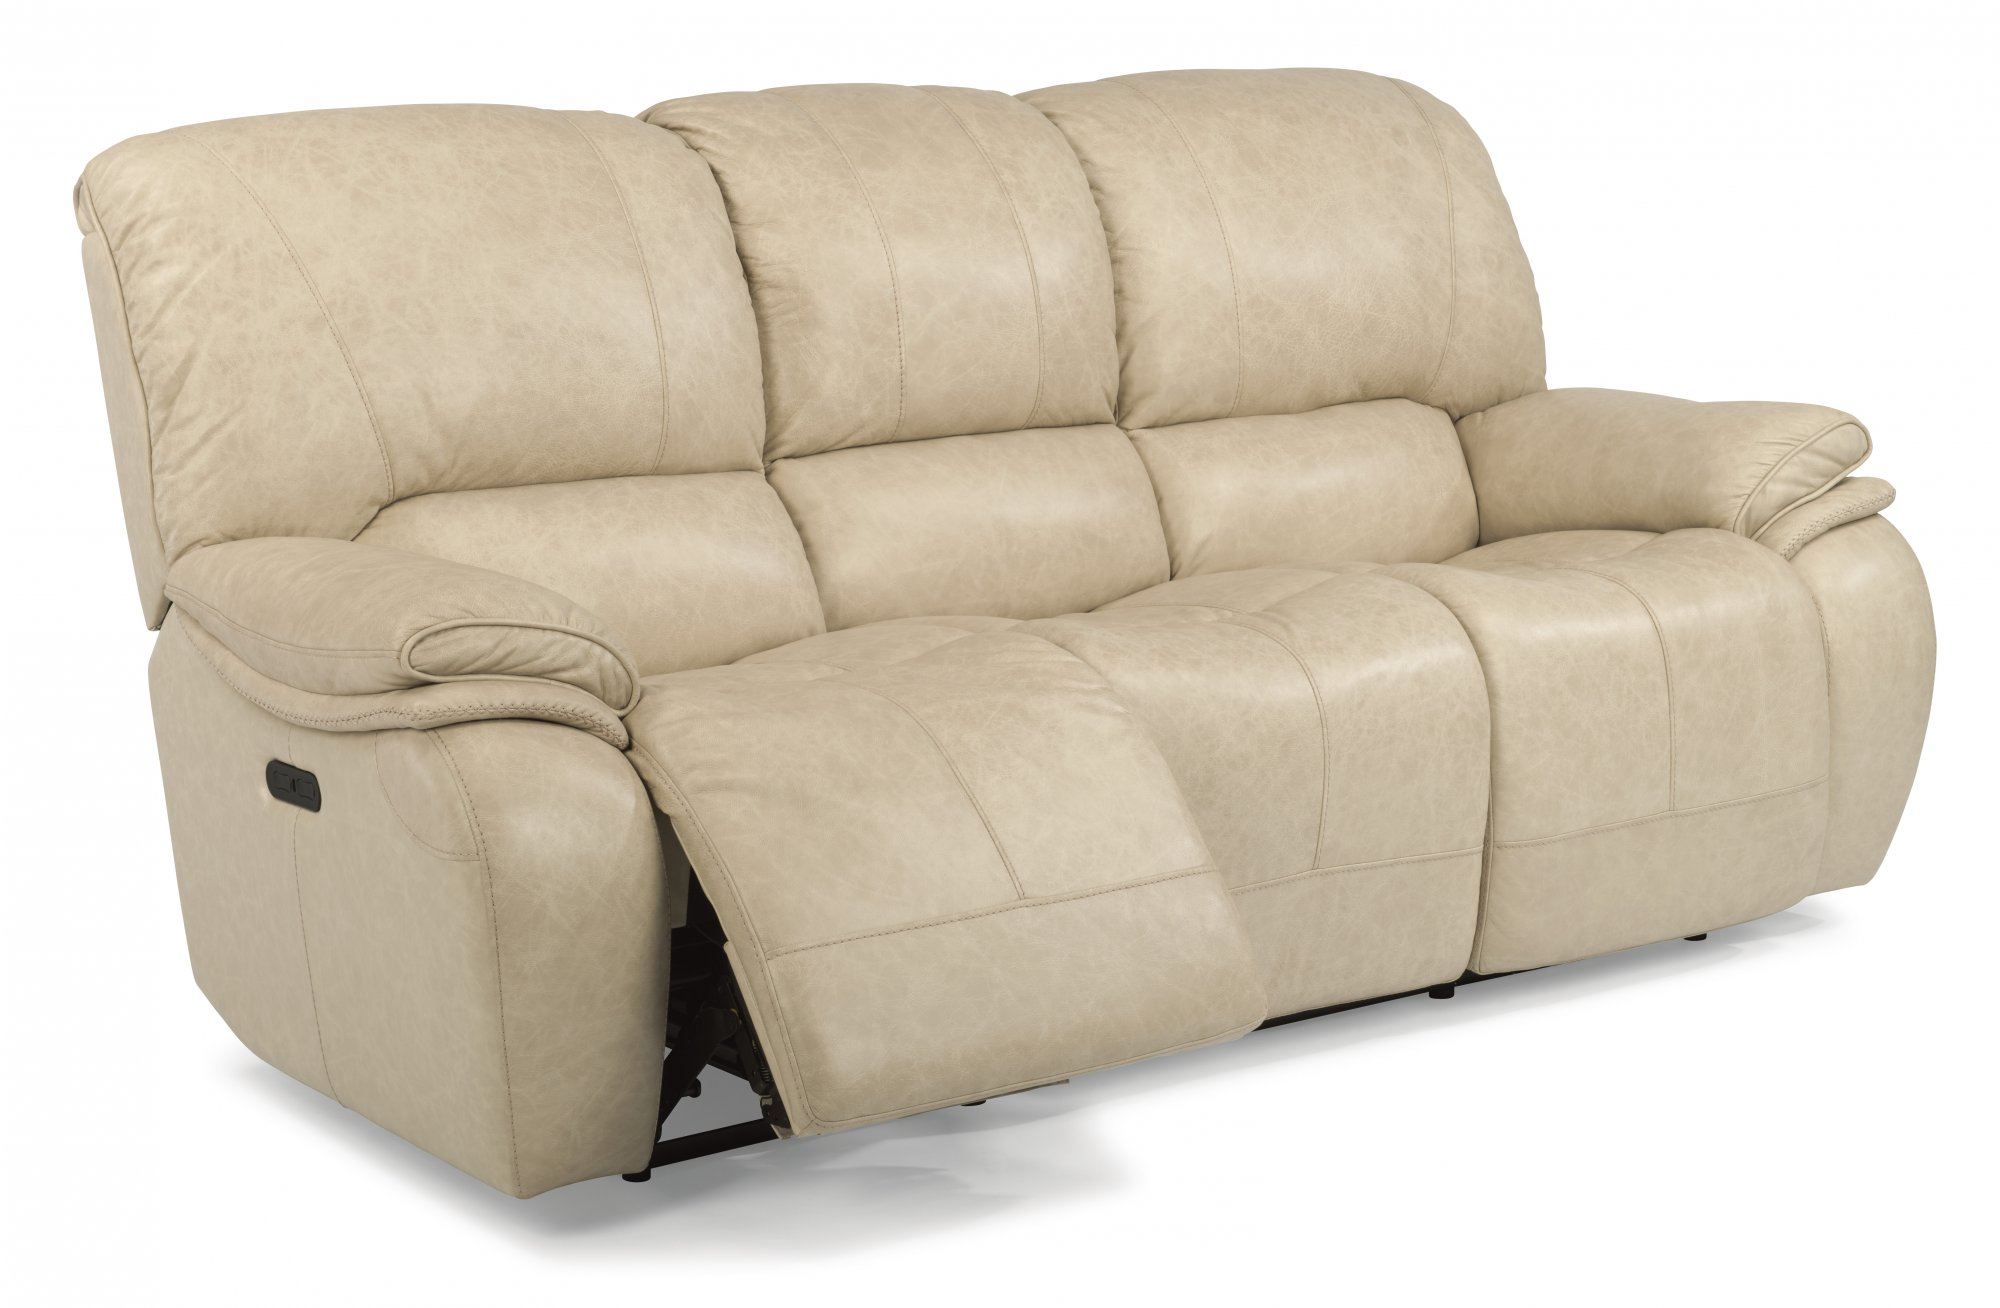 sofa seater sofas manual furniture world cornwall recliner at in anna devon